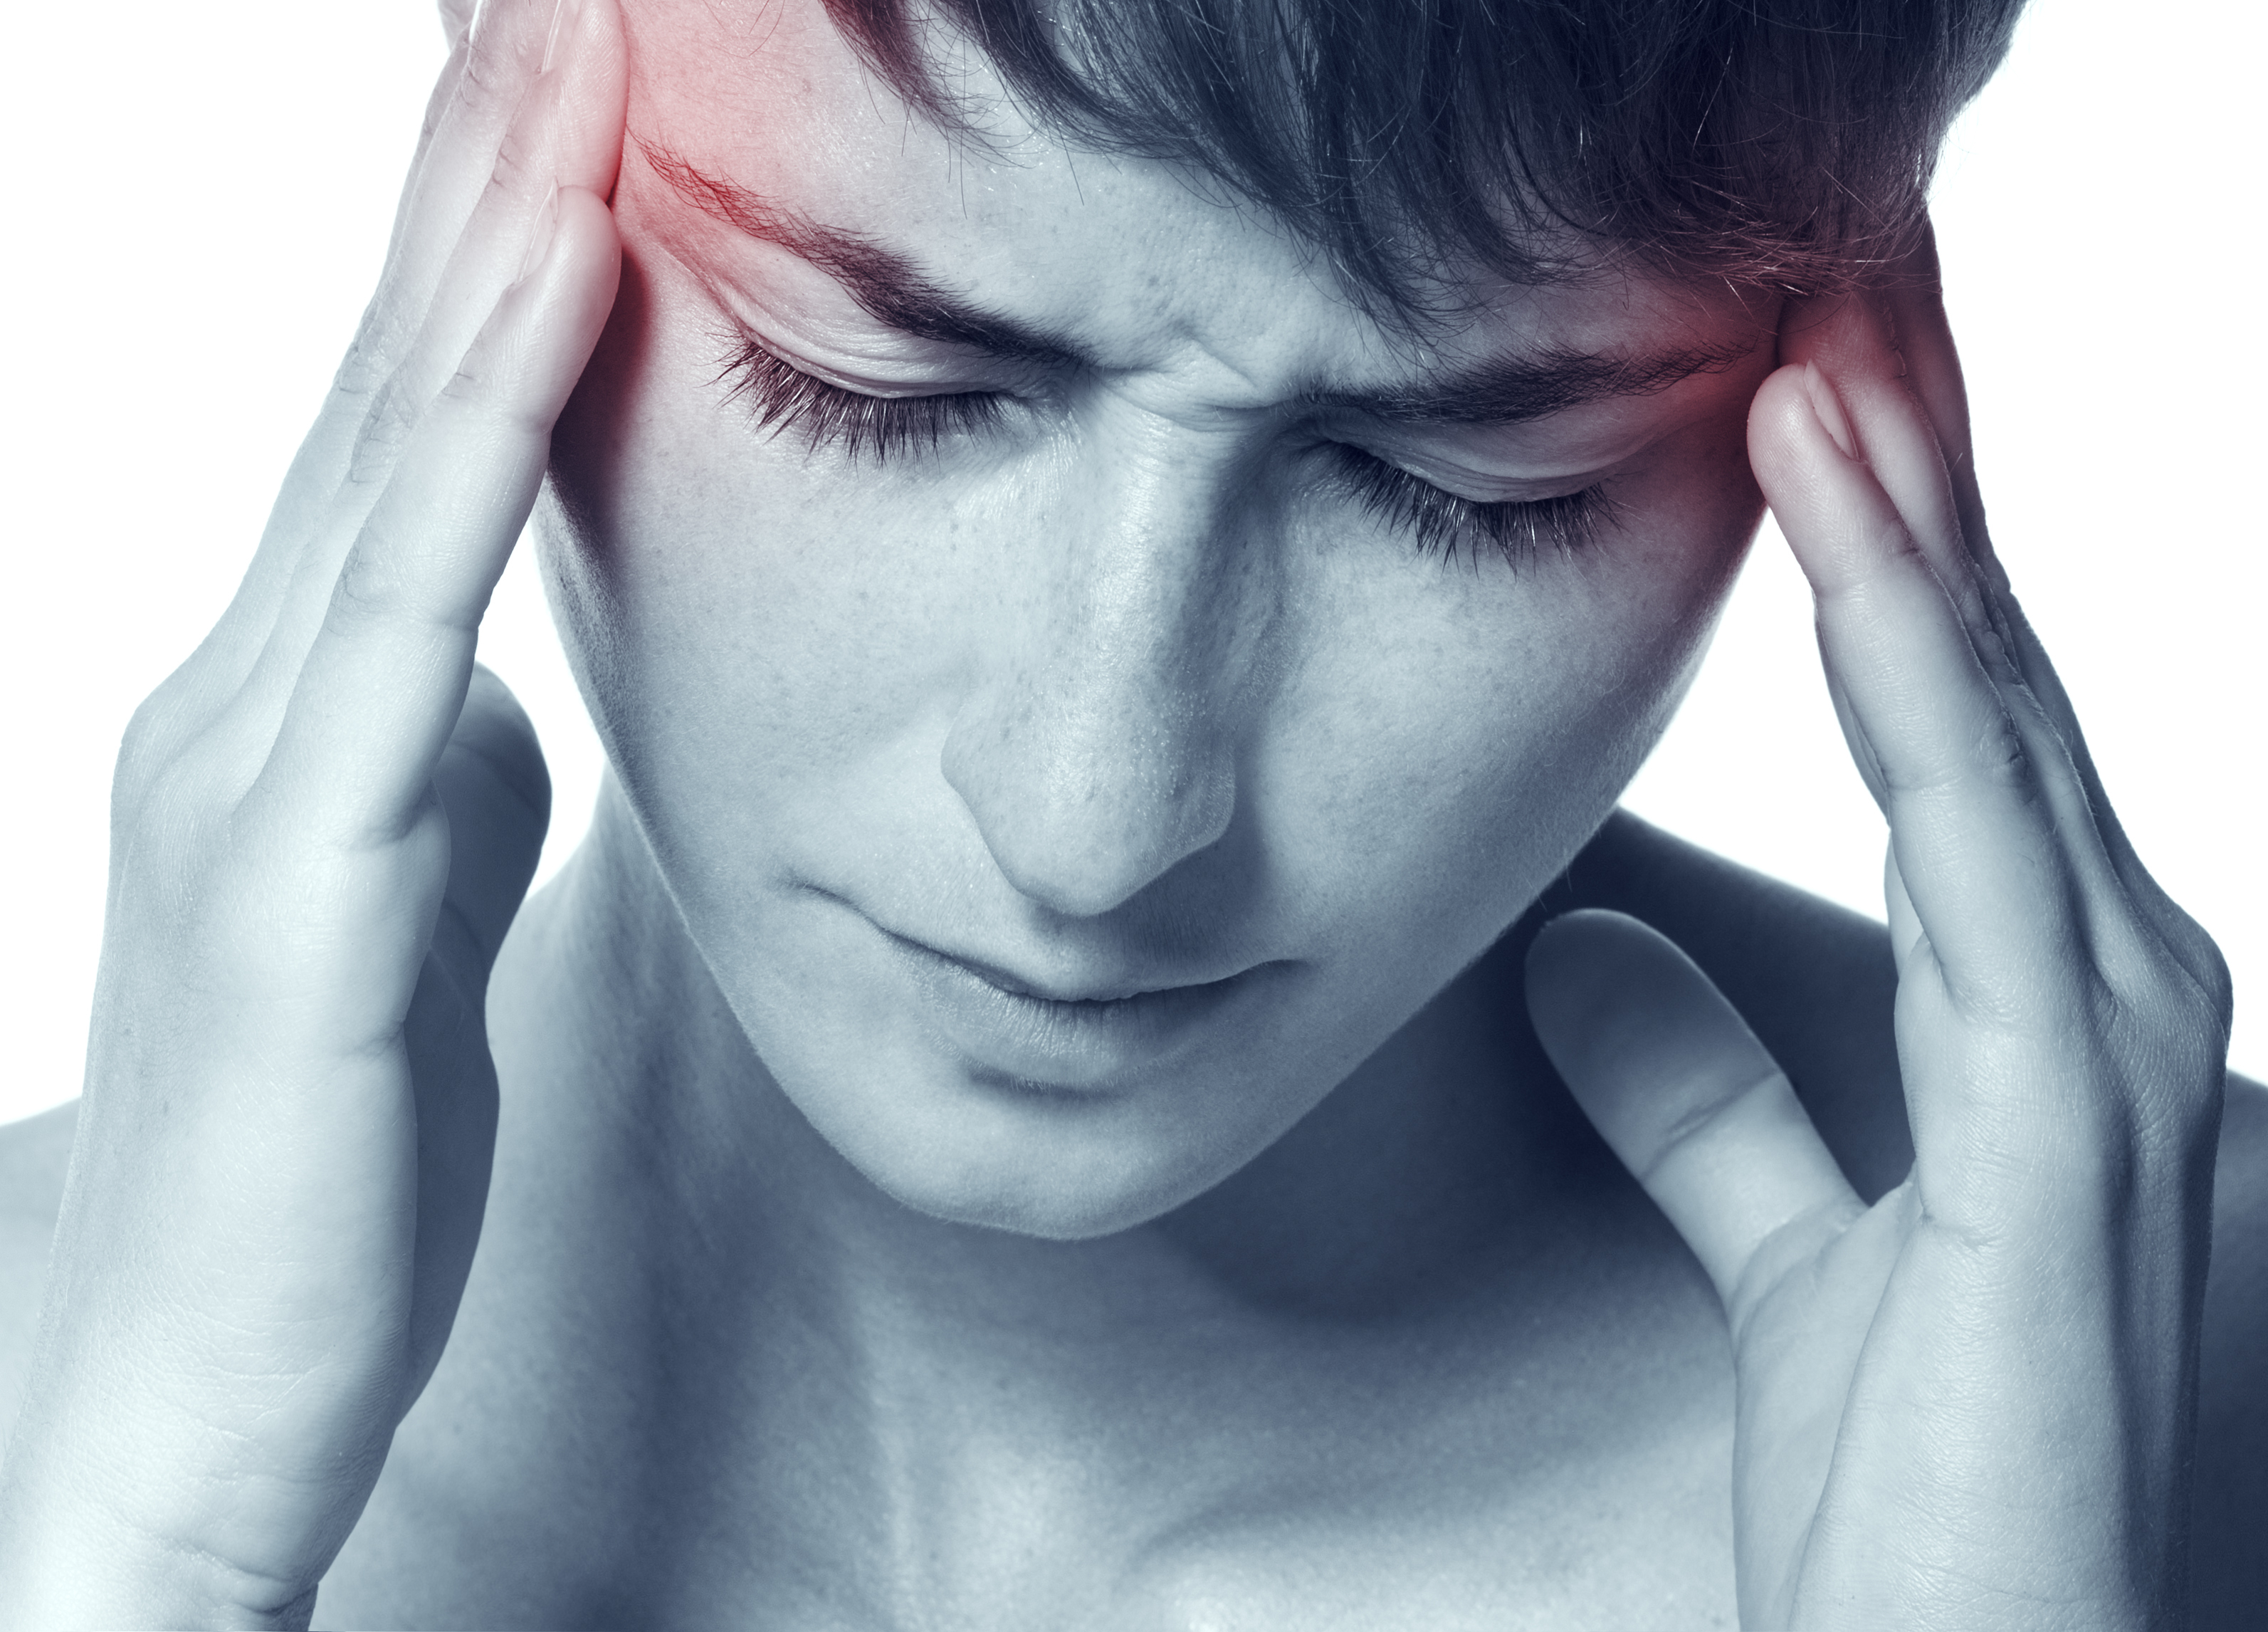 New Study Identifies How Disbelief, Lack of Support Negatively Affects Fibromyalgia Patients